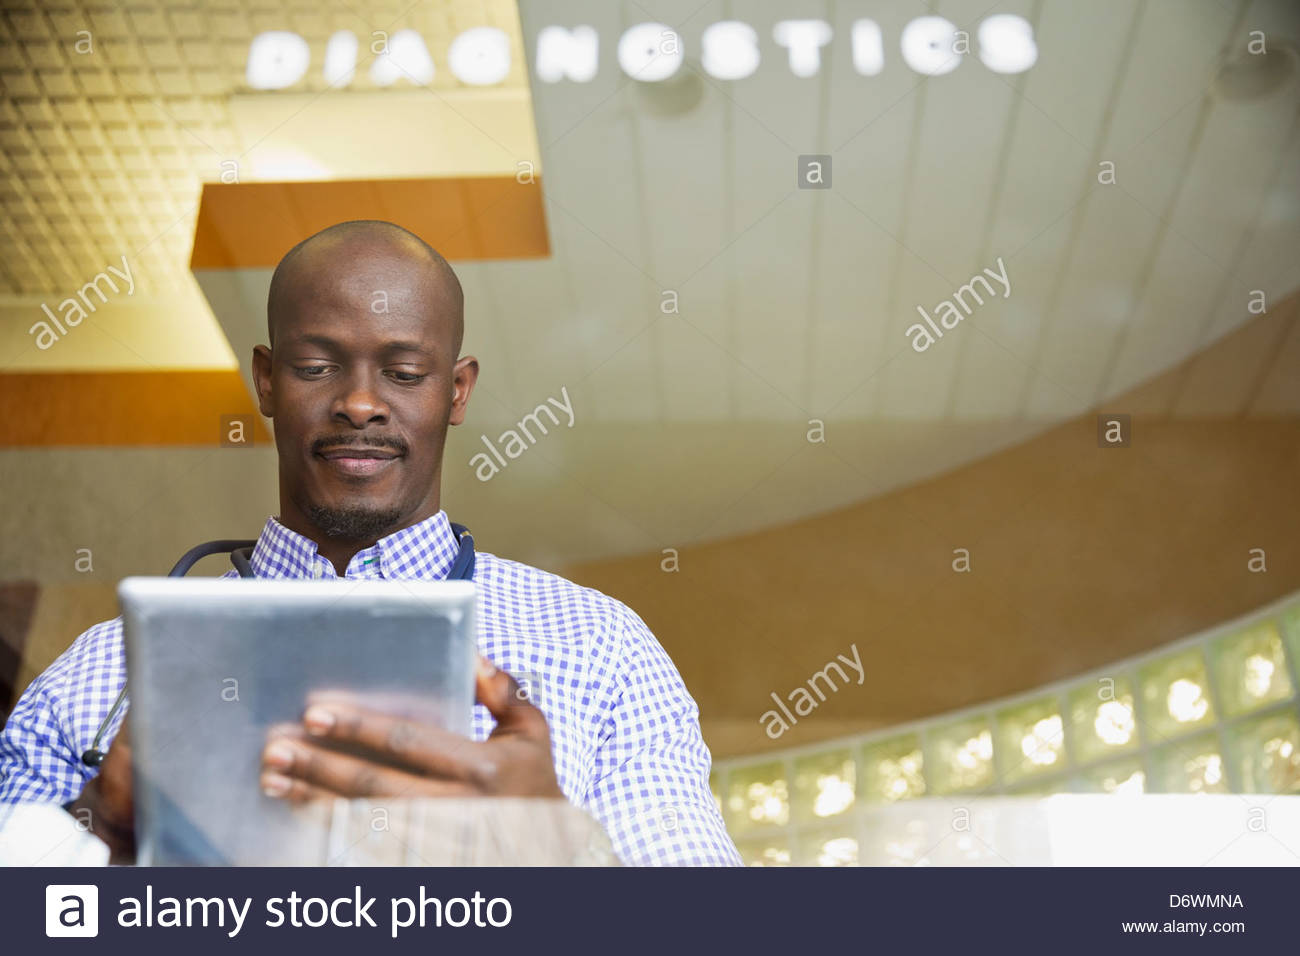 Mid adult male doctor using digital tablet in clinic Photo Stock